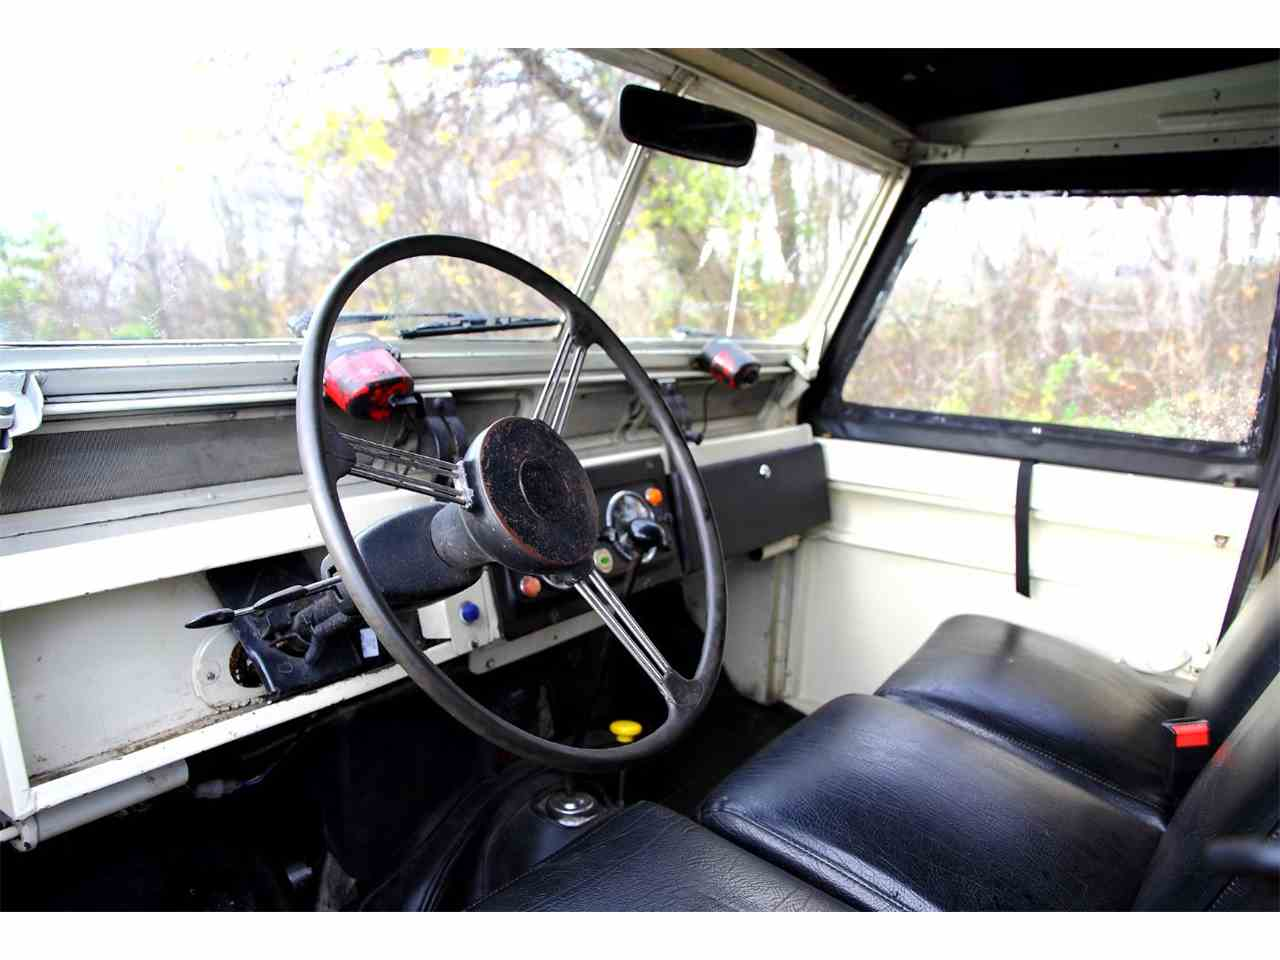 Large Picture of '71 Land Rover Santana located in Portland Oregon - $18,900.00 Offered by a Private Seller - HRHS